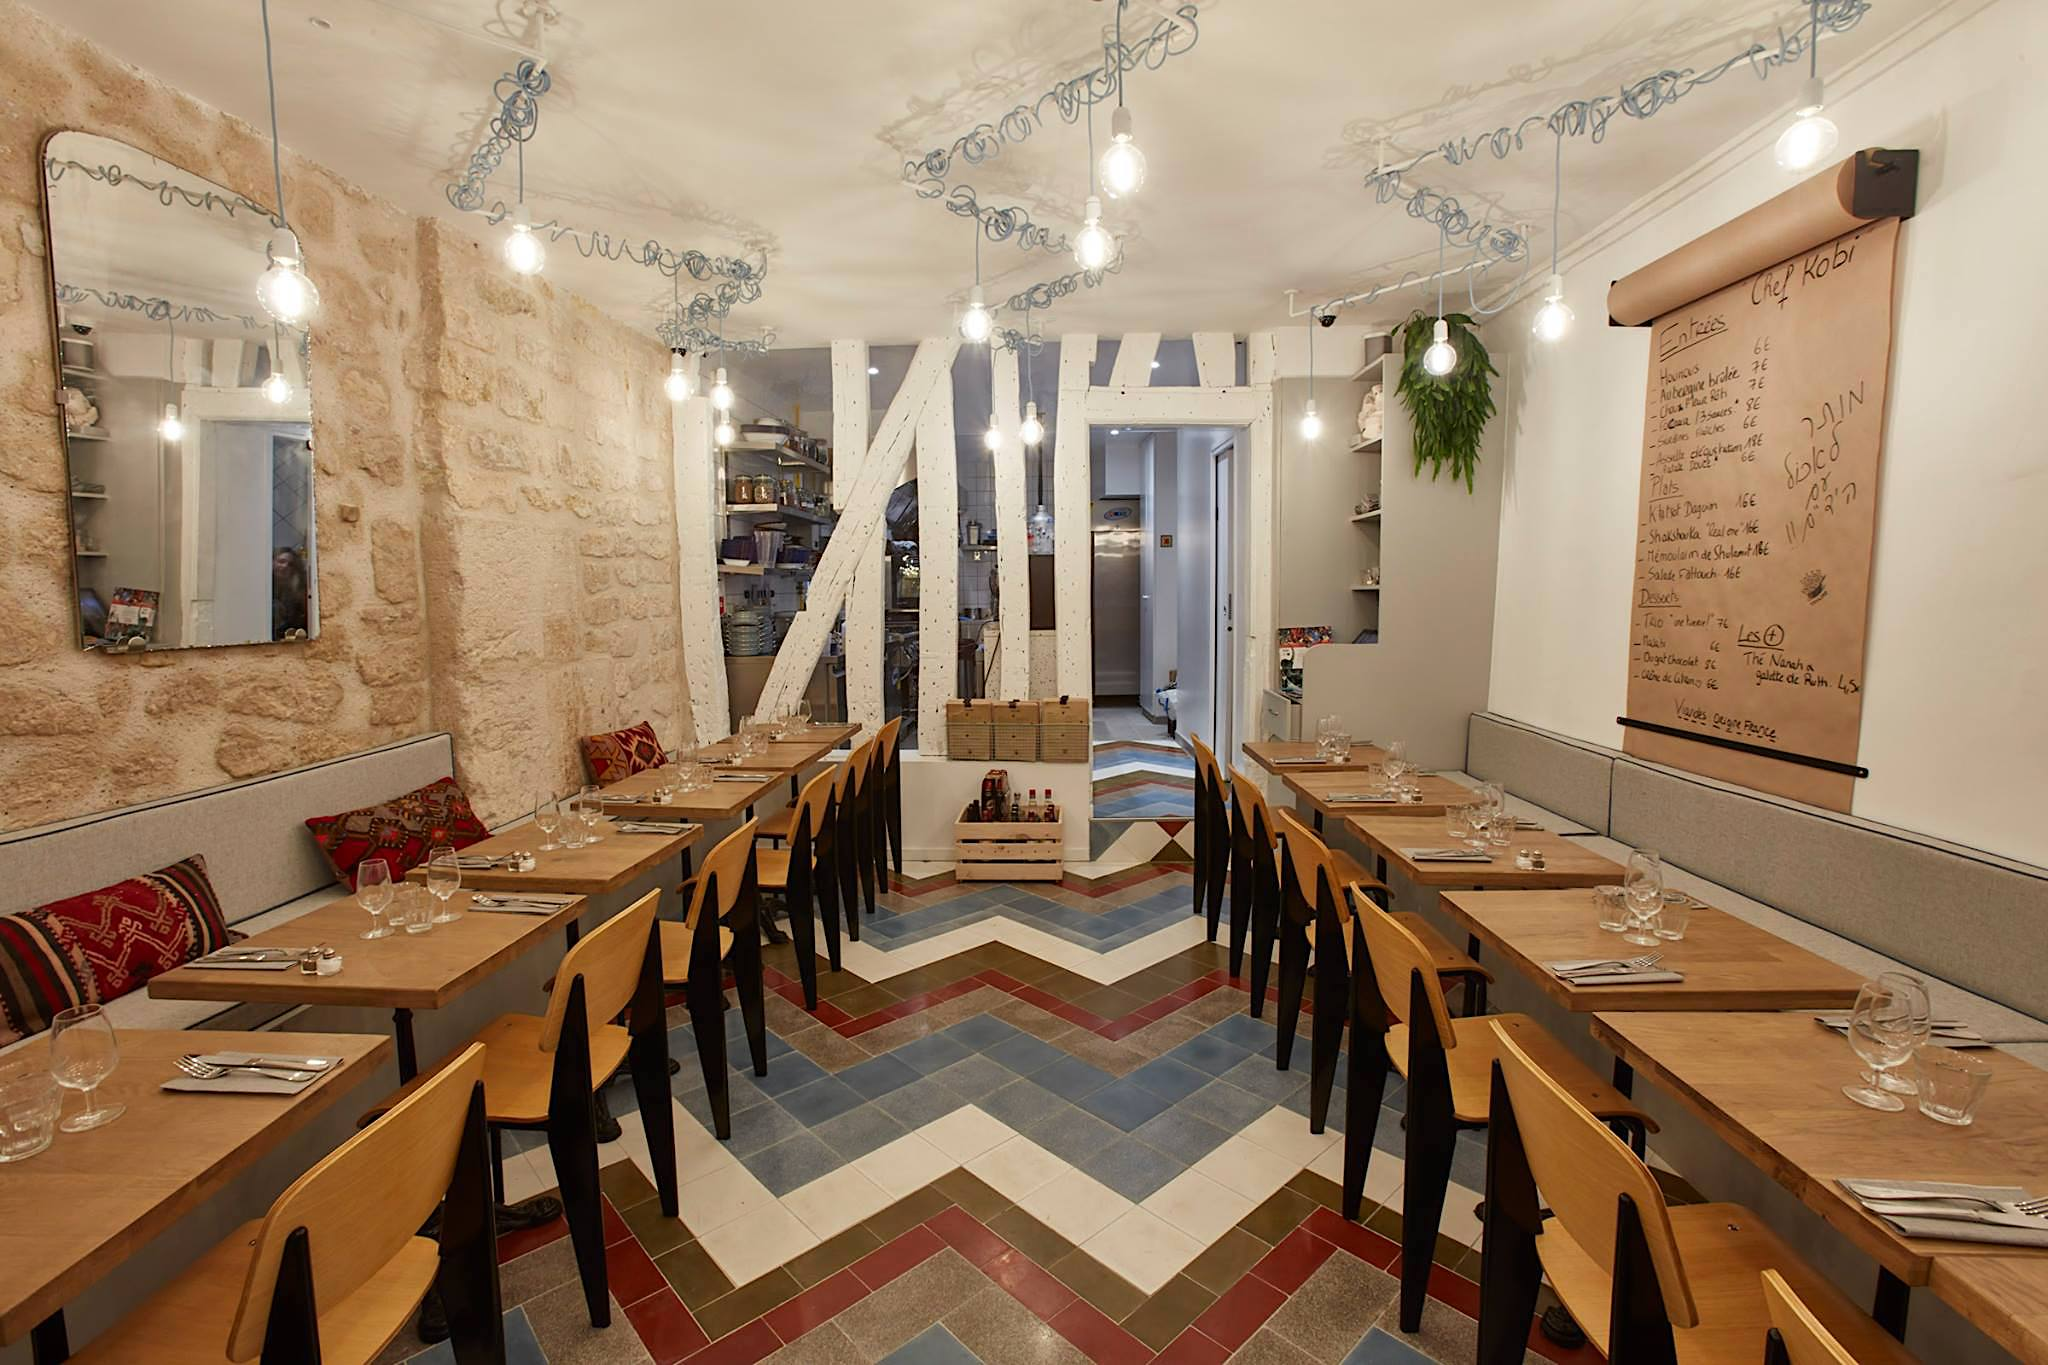 One of the best places to have Tel Aviv food in Paris is Tavline, with its slick contemporary decor of exposed brick walls and blue and red zig zag-tiled floors.